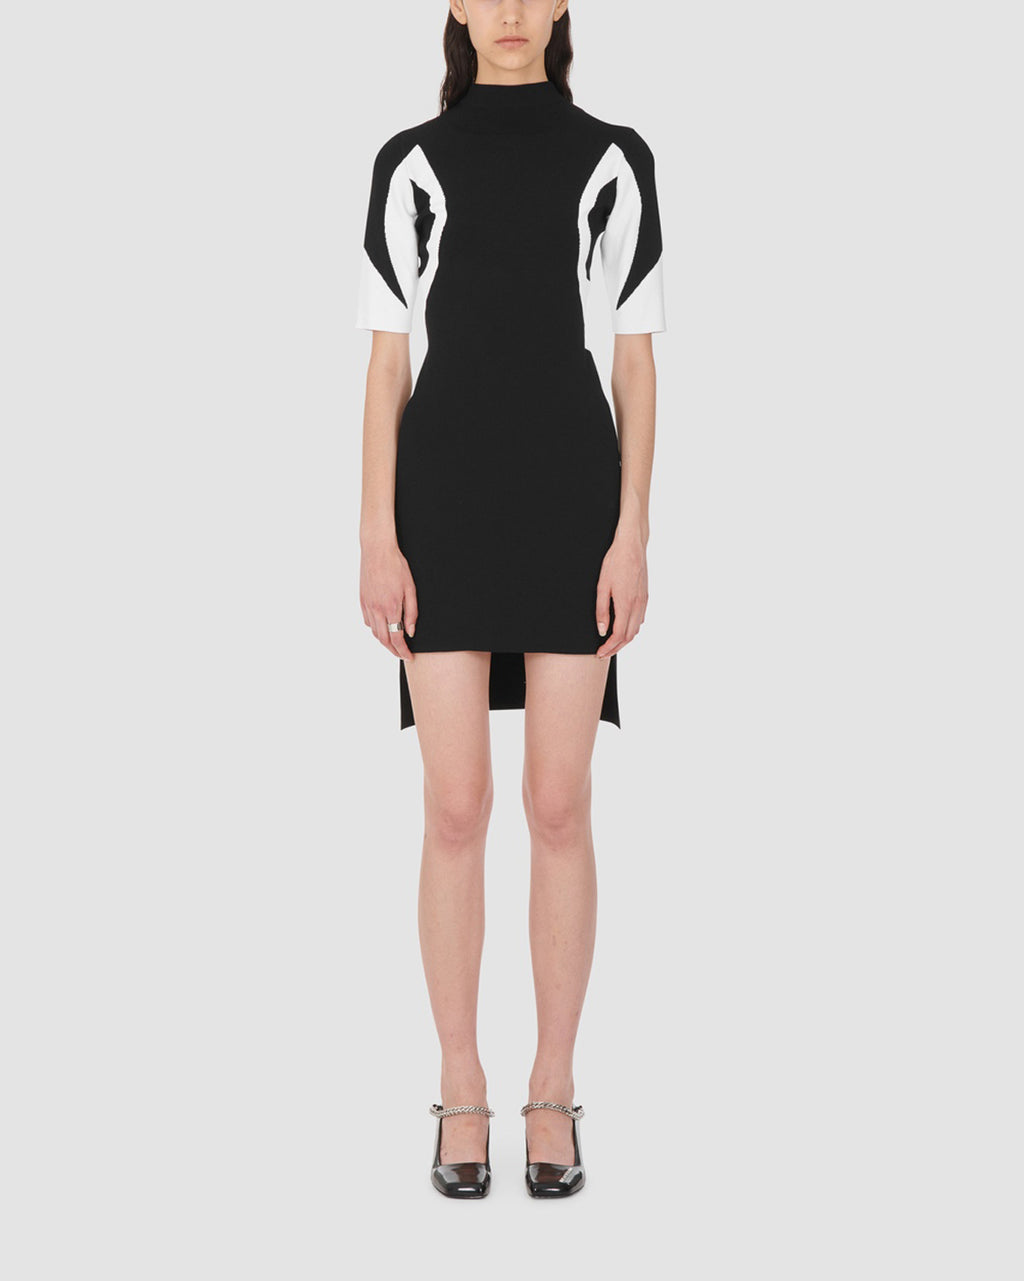 1017 ALYX 9SM | WARP SPEED DRESS | Dress | BLACK, Google Shopping, Knitwear, S20, SS20, Woman, WOMEN